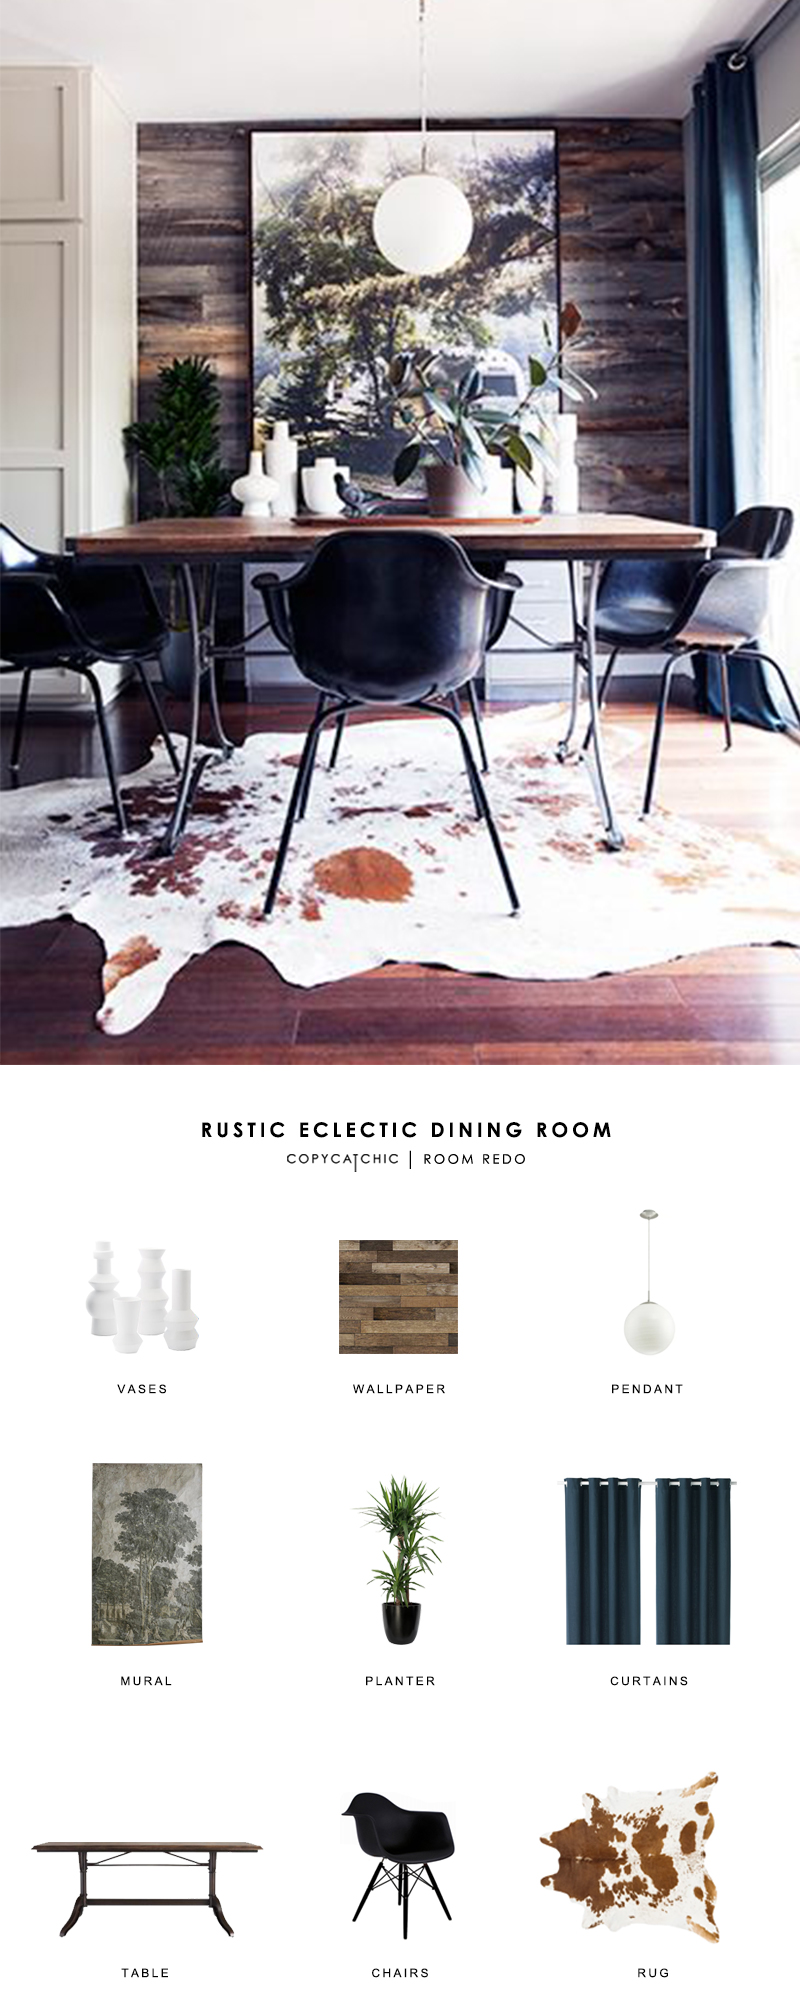 This modern rustic eclectic dining room by Kyle Schuneman gets recreated for less by copycatchic luxe living for less budget home decor and design room redos